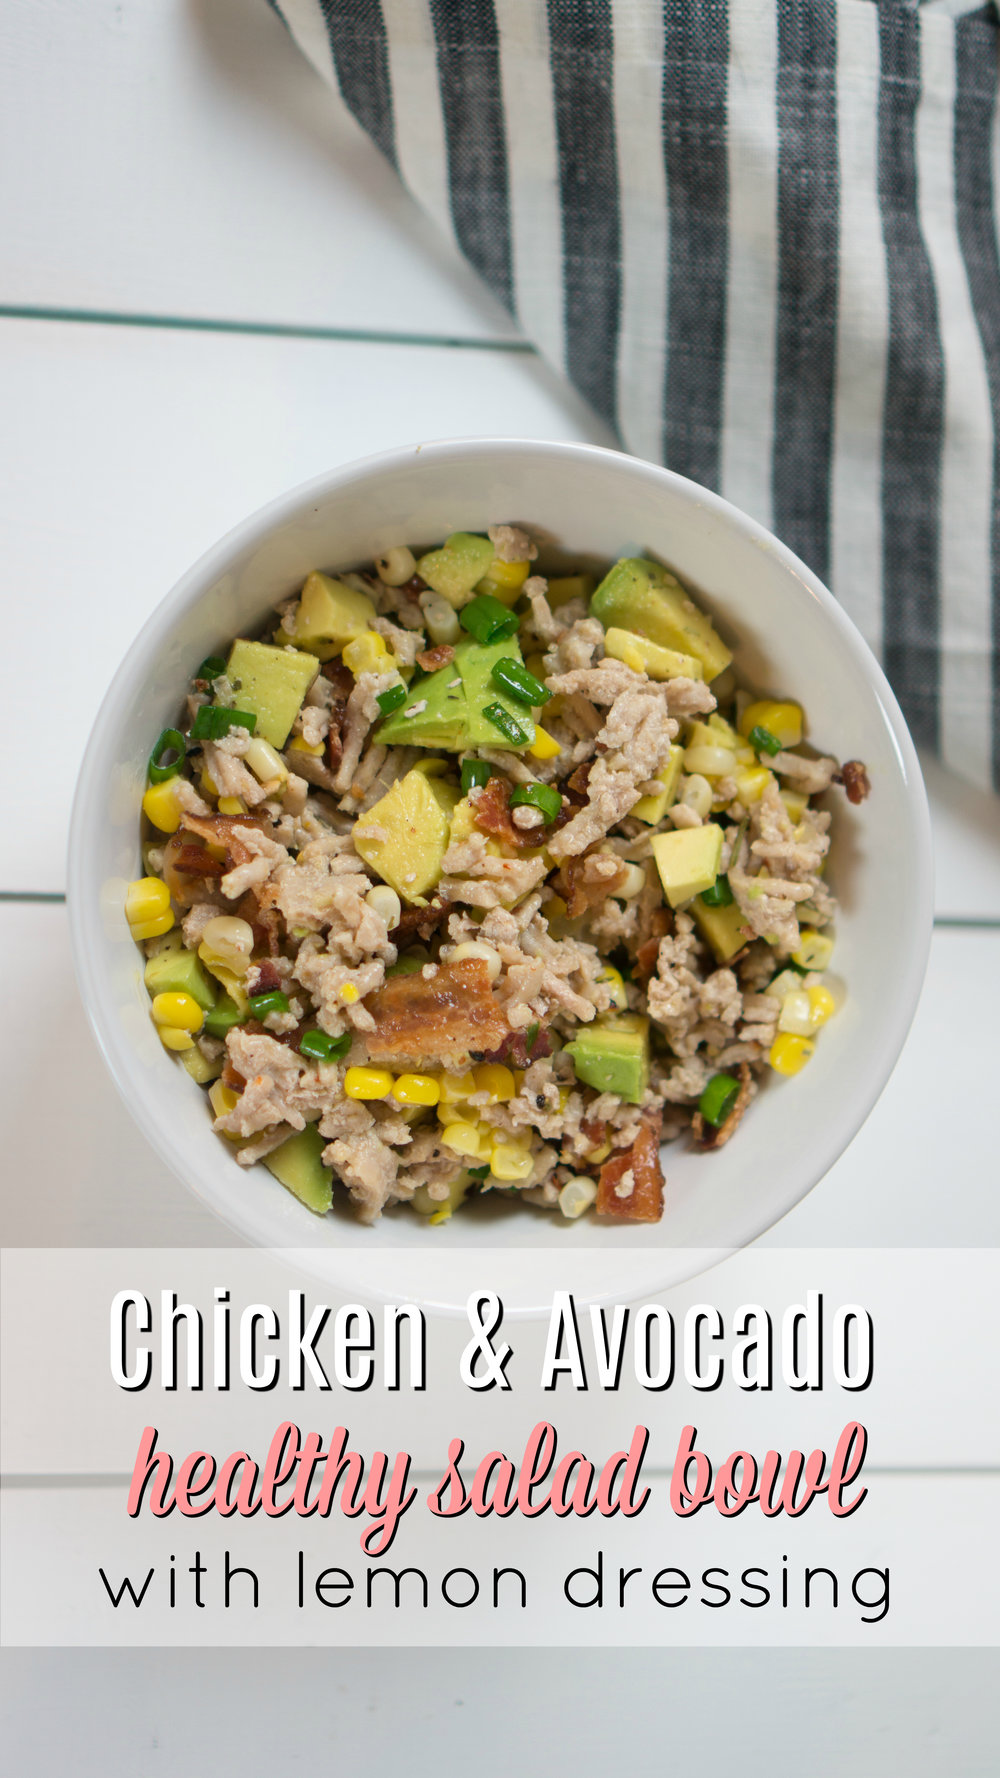 Healthy Chicken & Avocado Salad